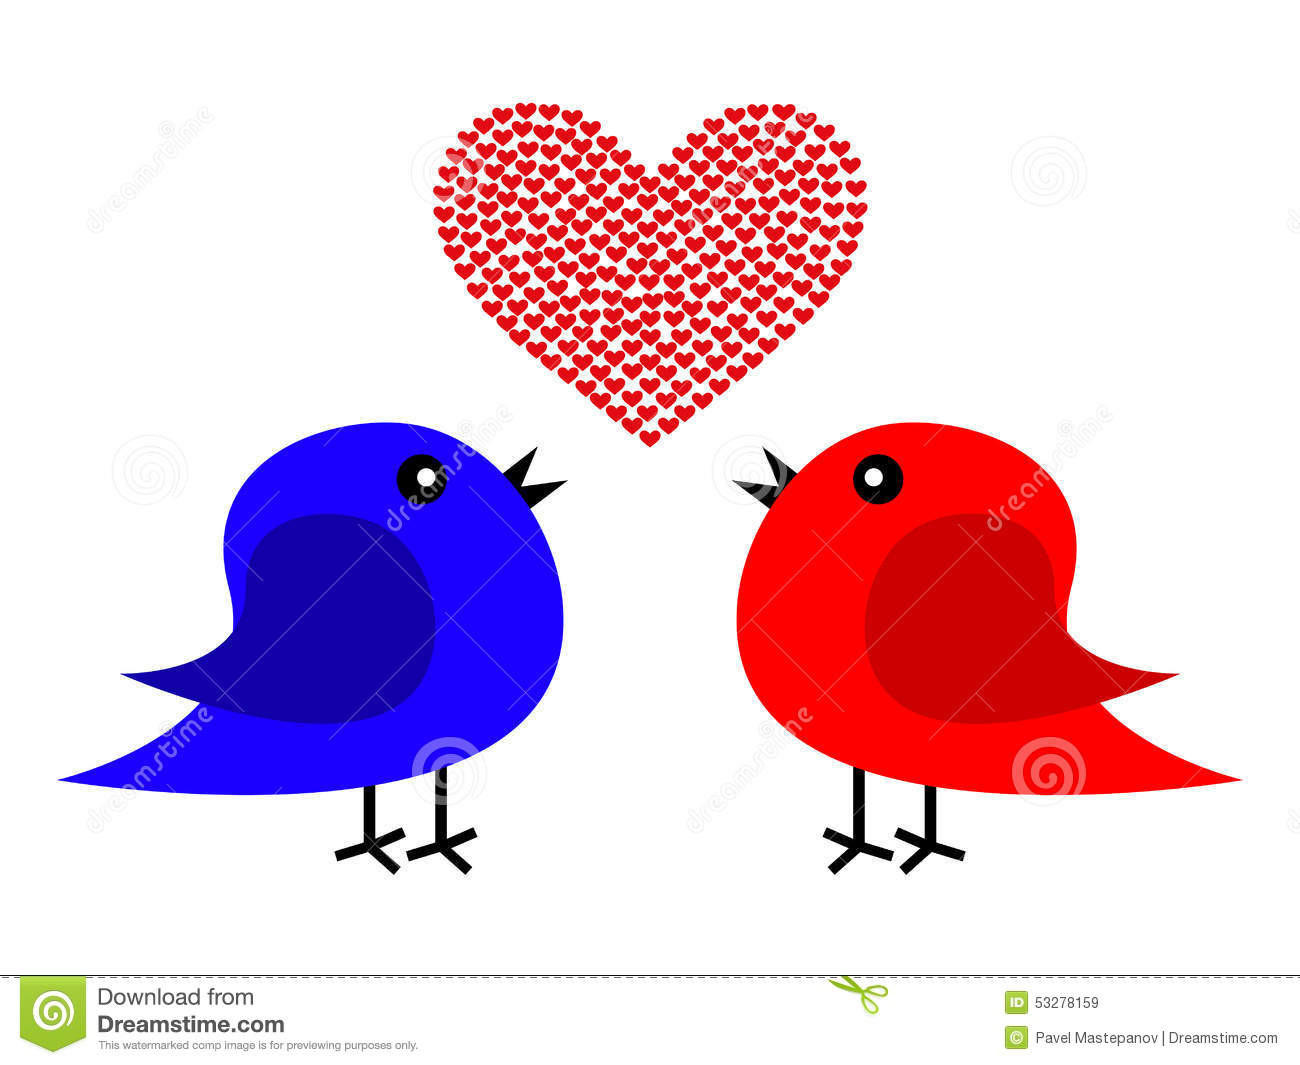 red heart shaped vase of two birds and heart stock illustration illustration of drawing with two birds and heart